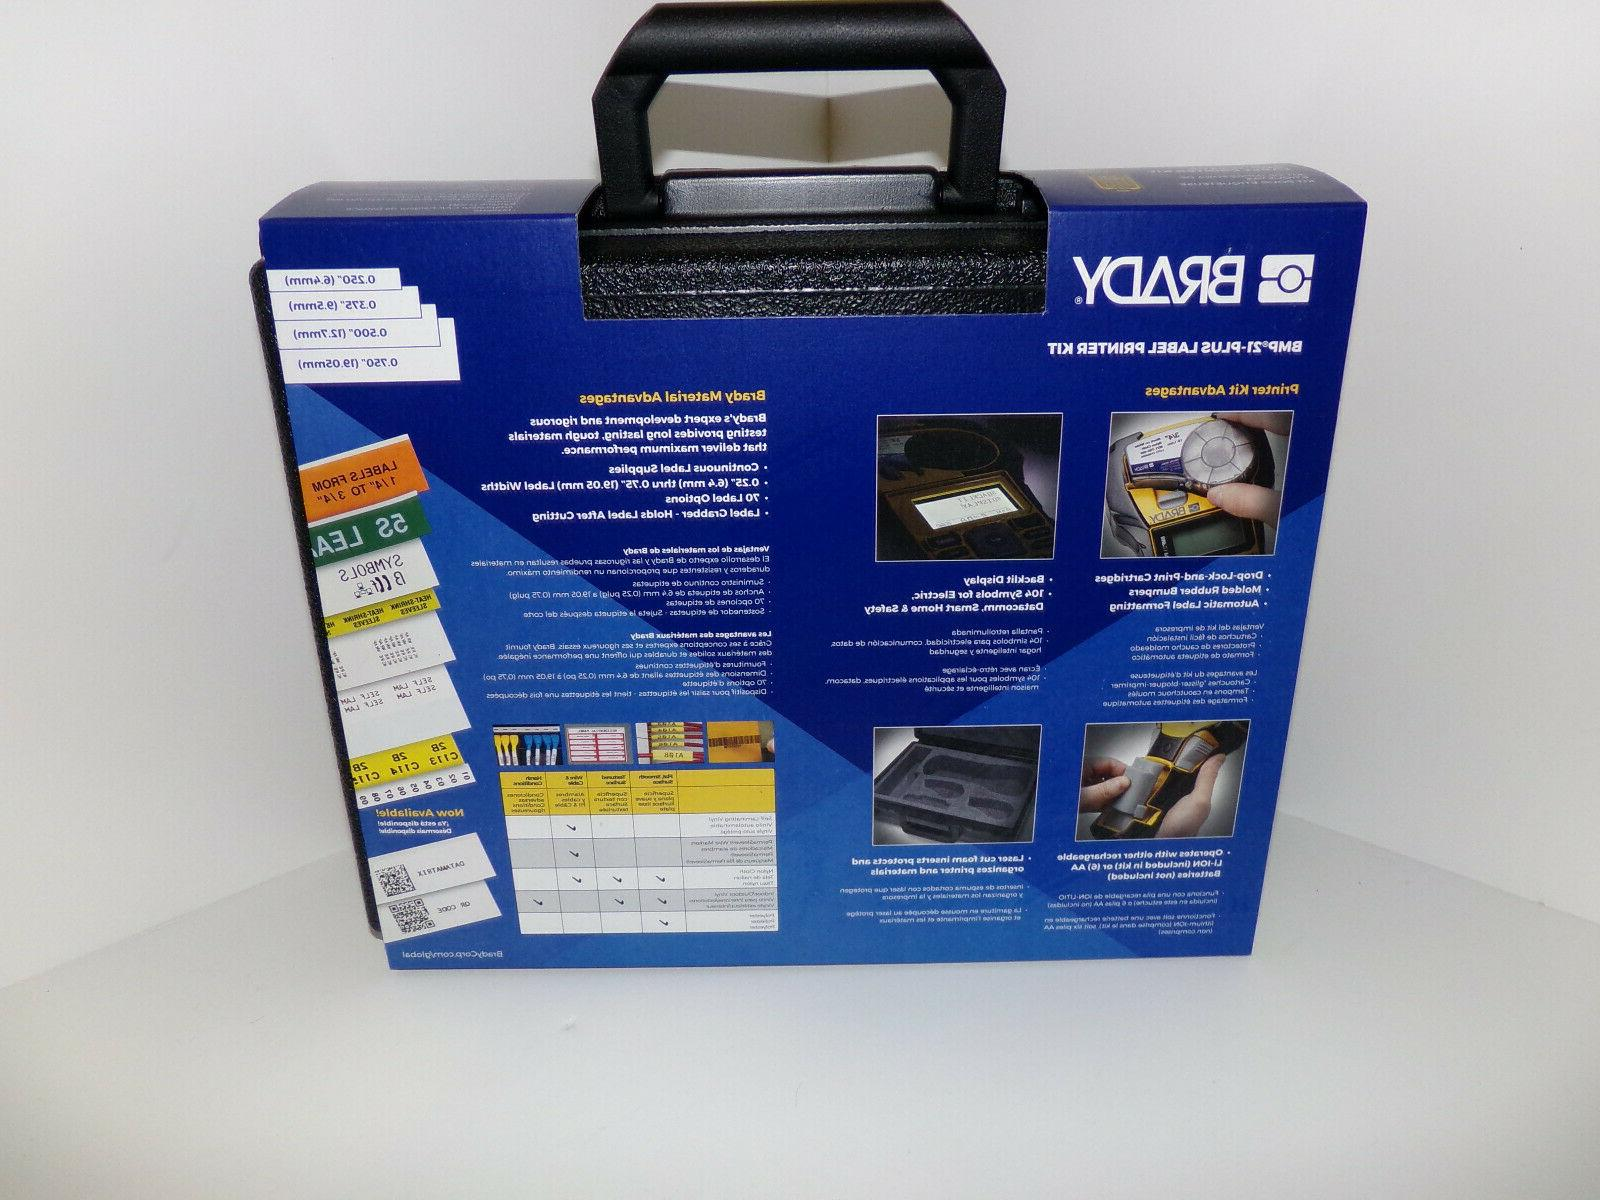 BRADY Label Printer Bundle